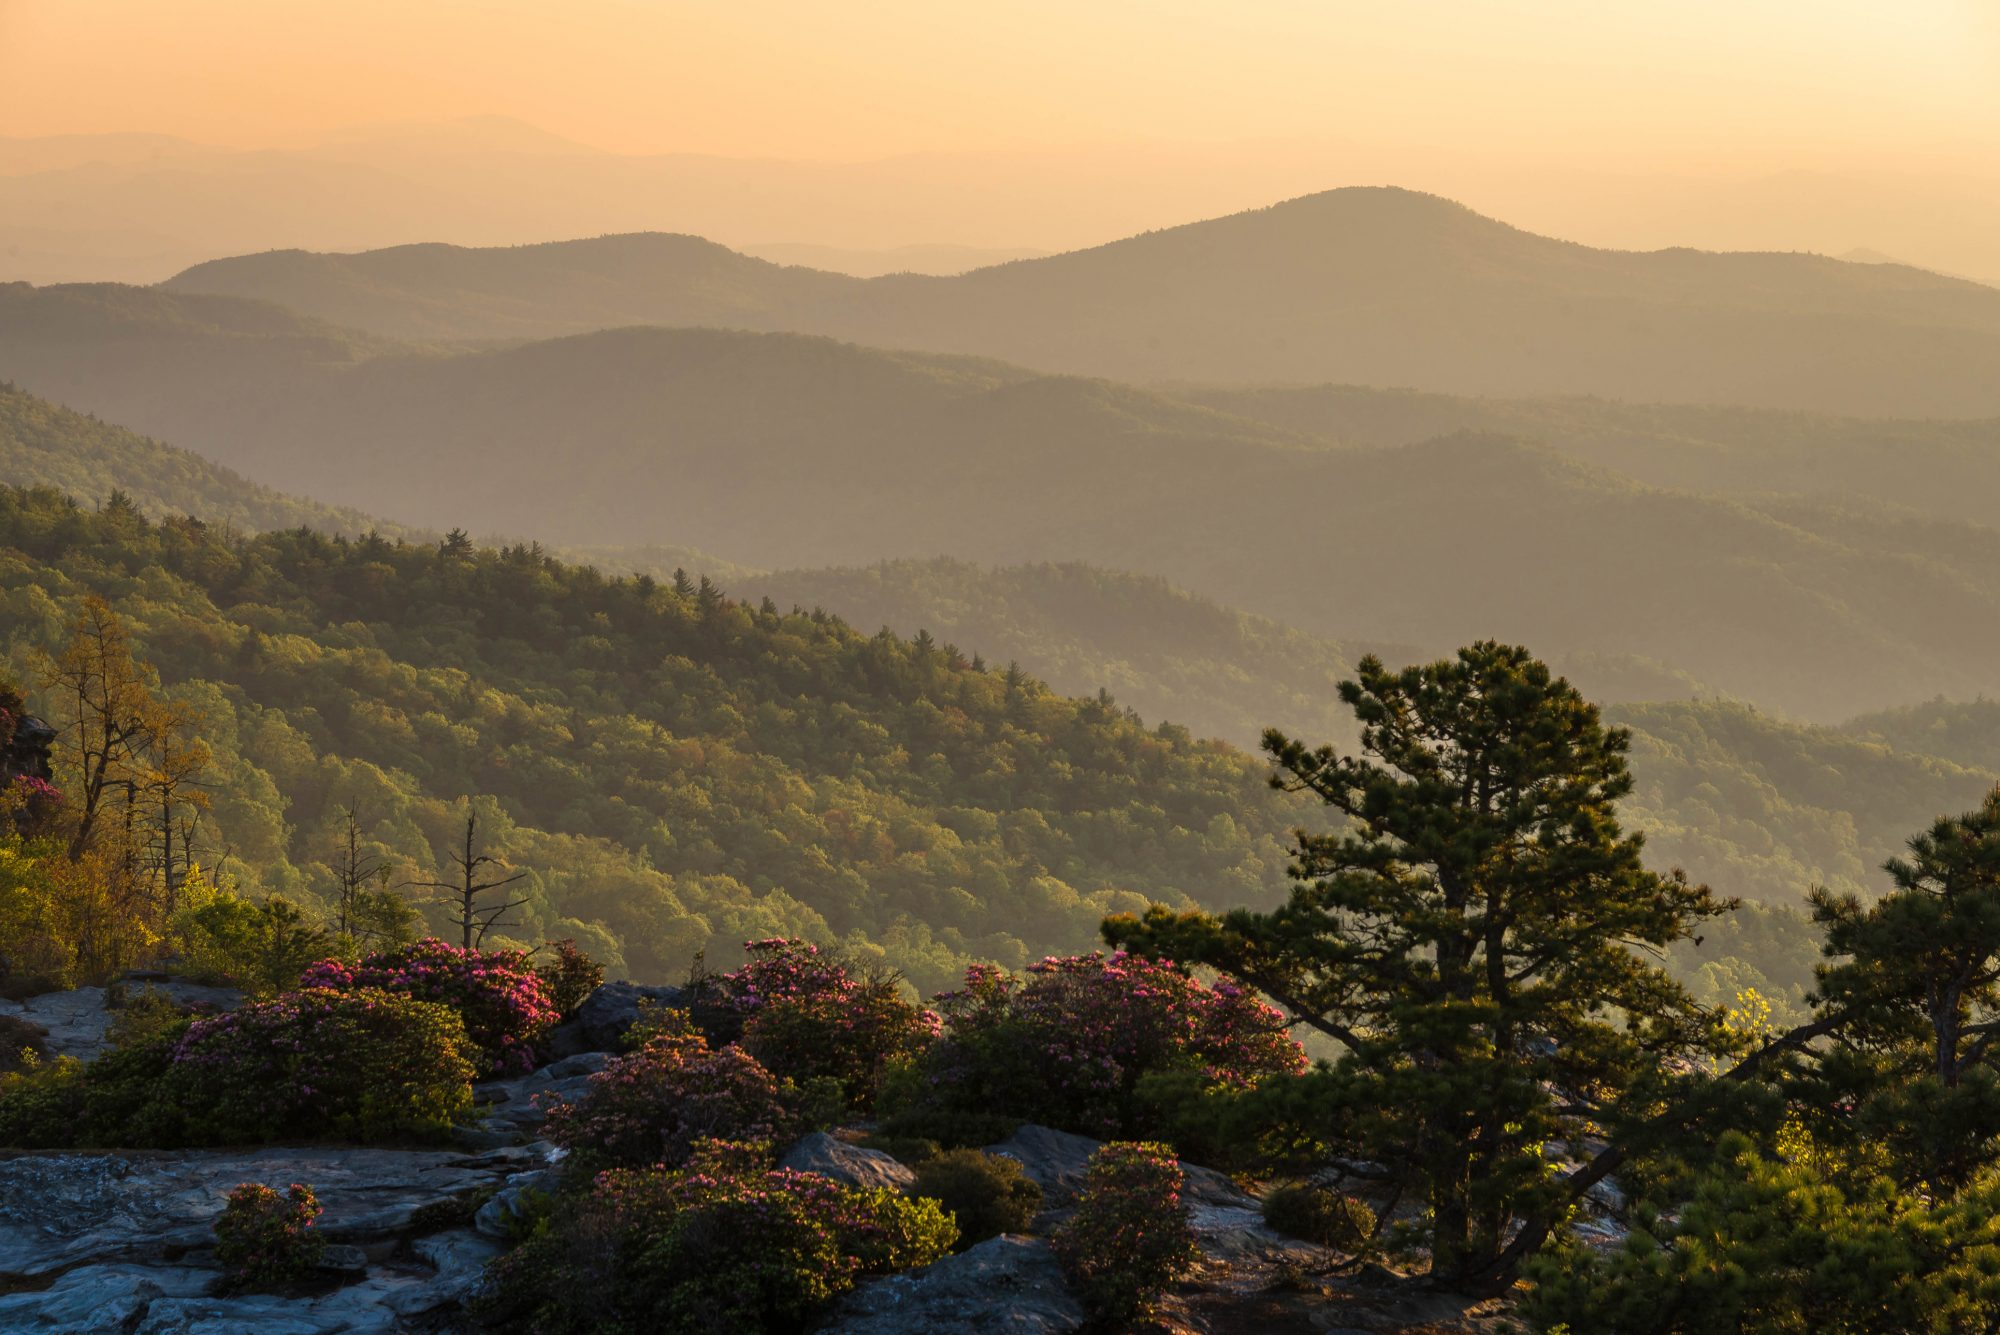 3. Boone, North Carolina